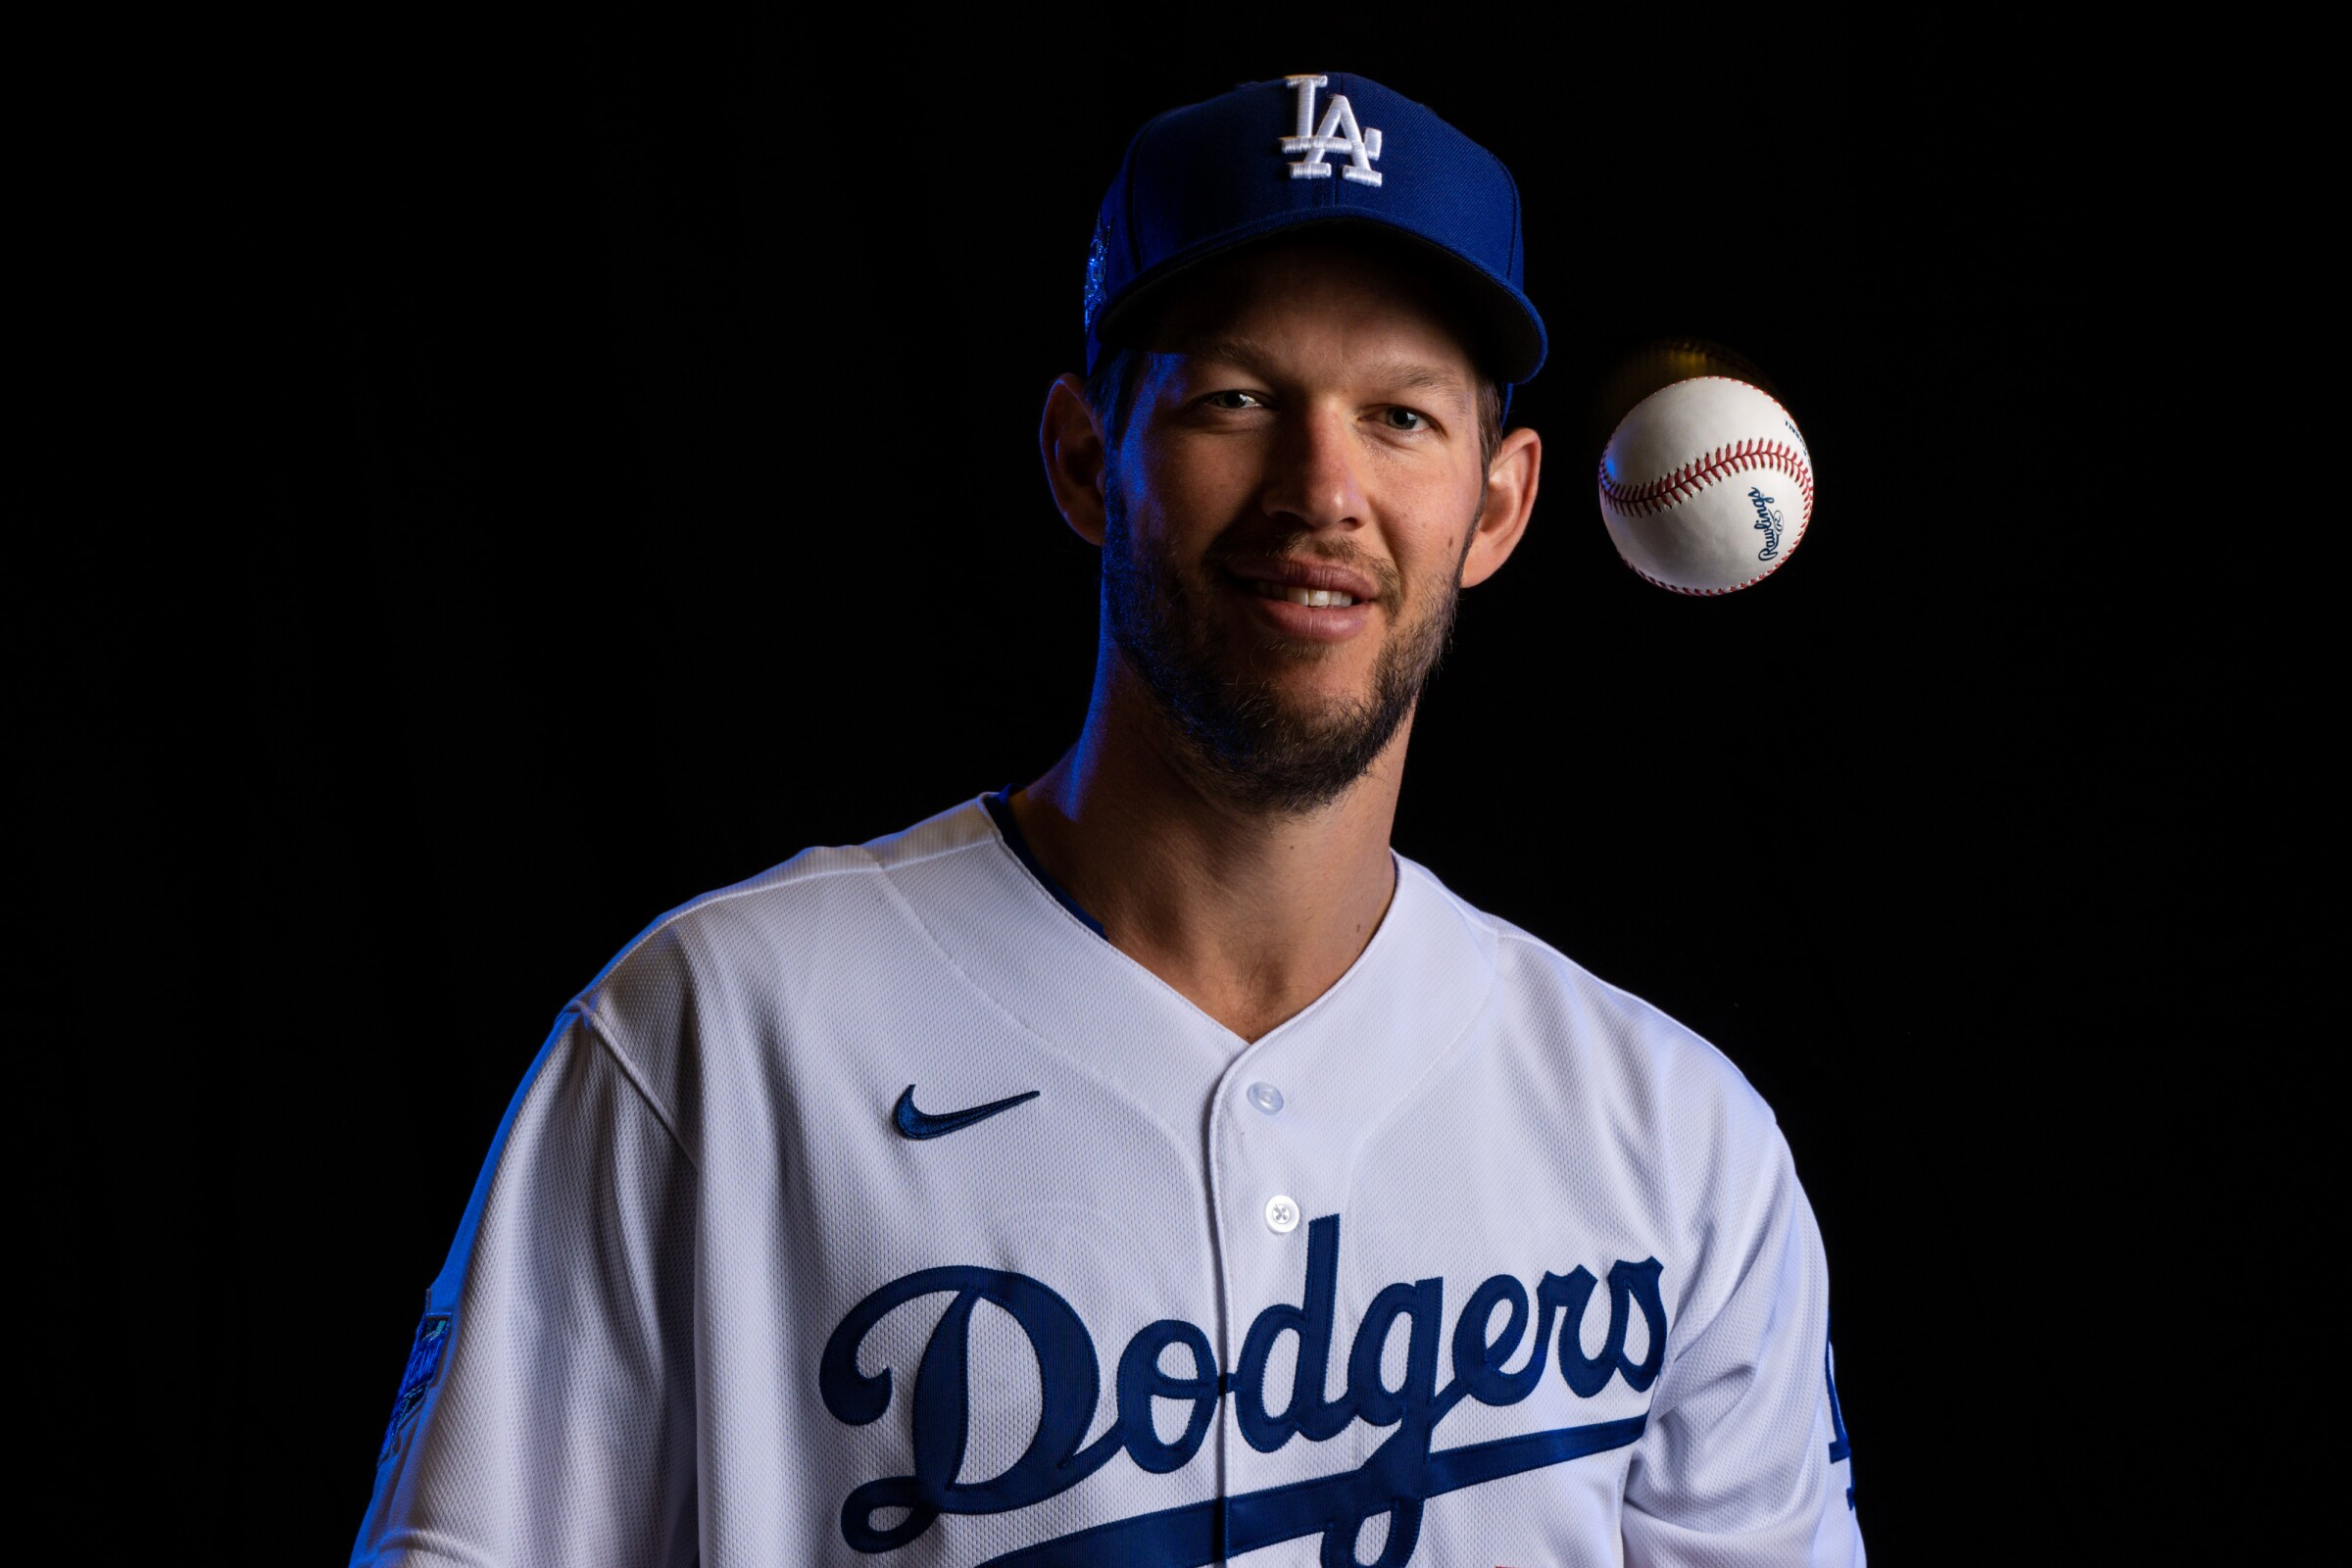 Dodgers pitcher Clayton Kershaw (22) poses for a portrait.